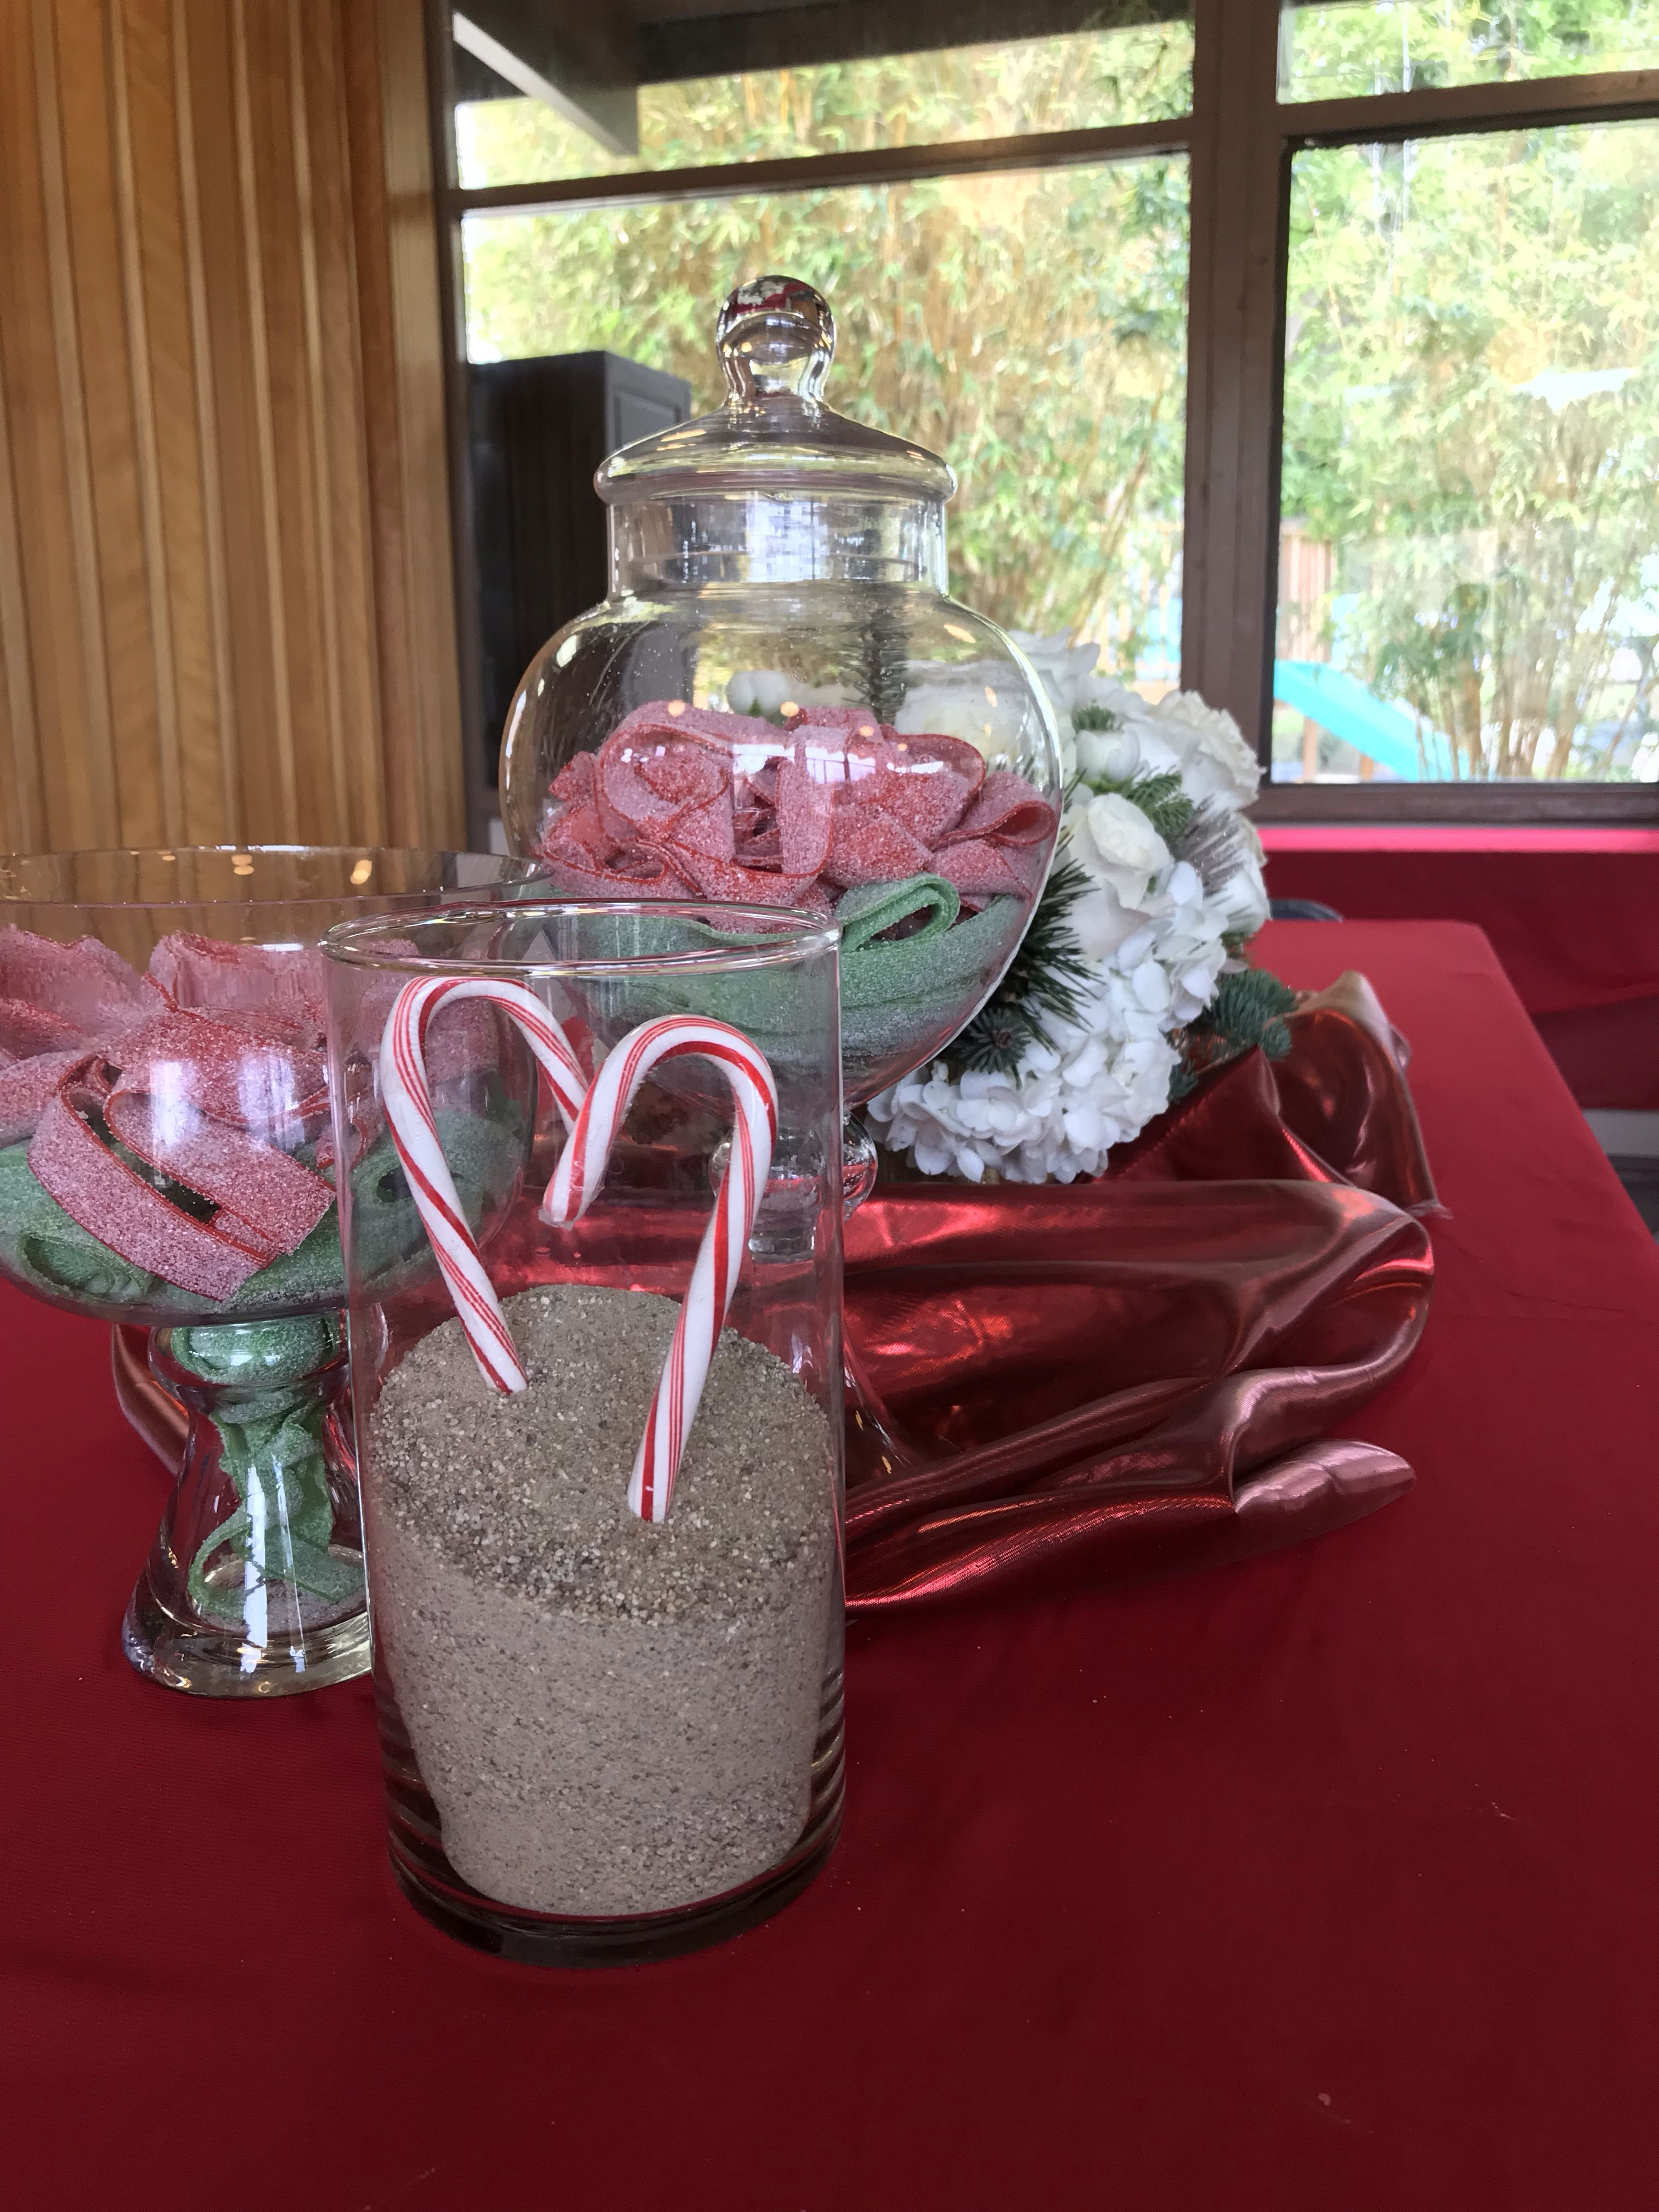 Candy Decor For Beach Themed Christmas Party Or Simple Rustic